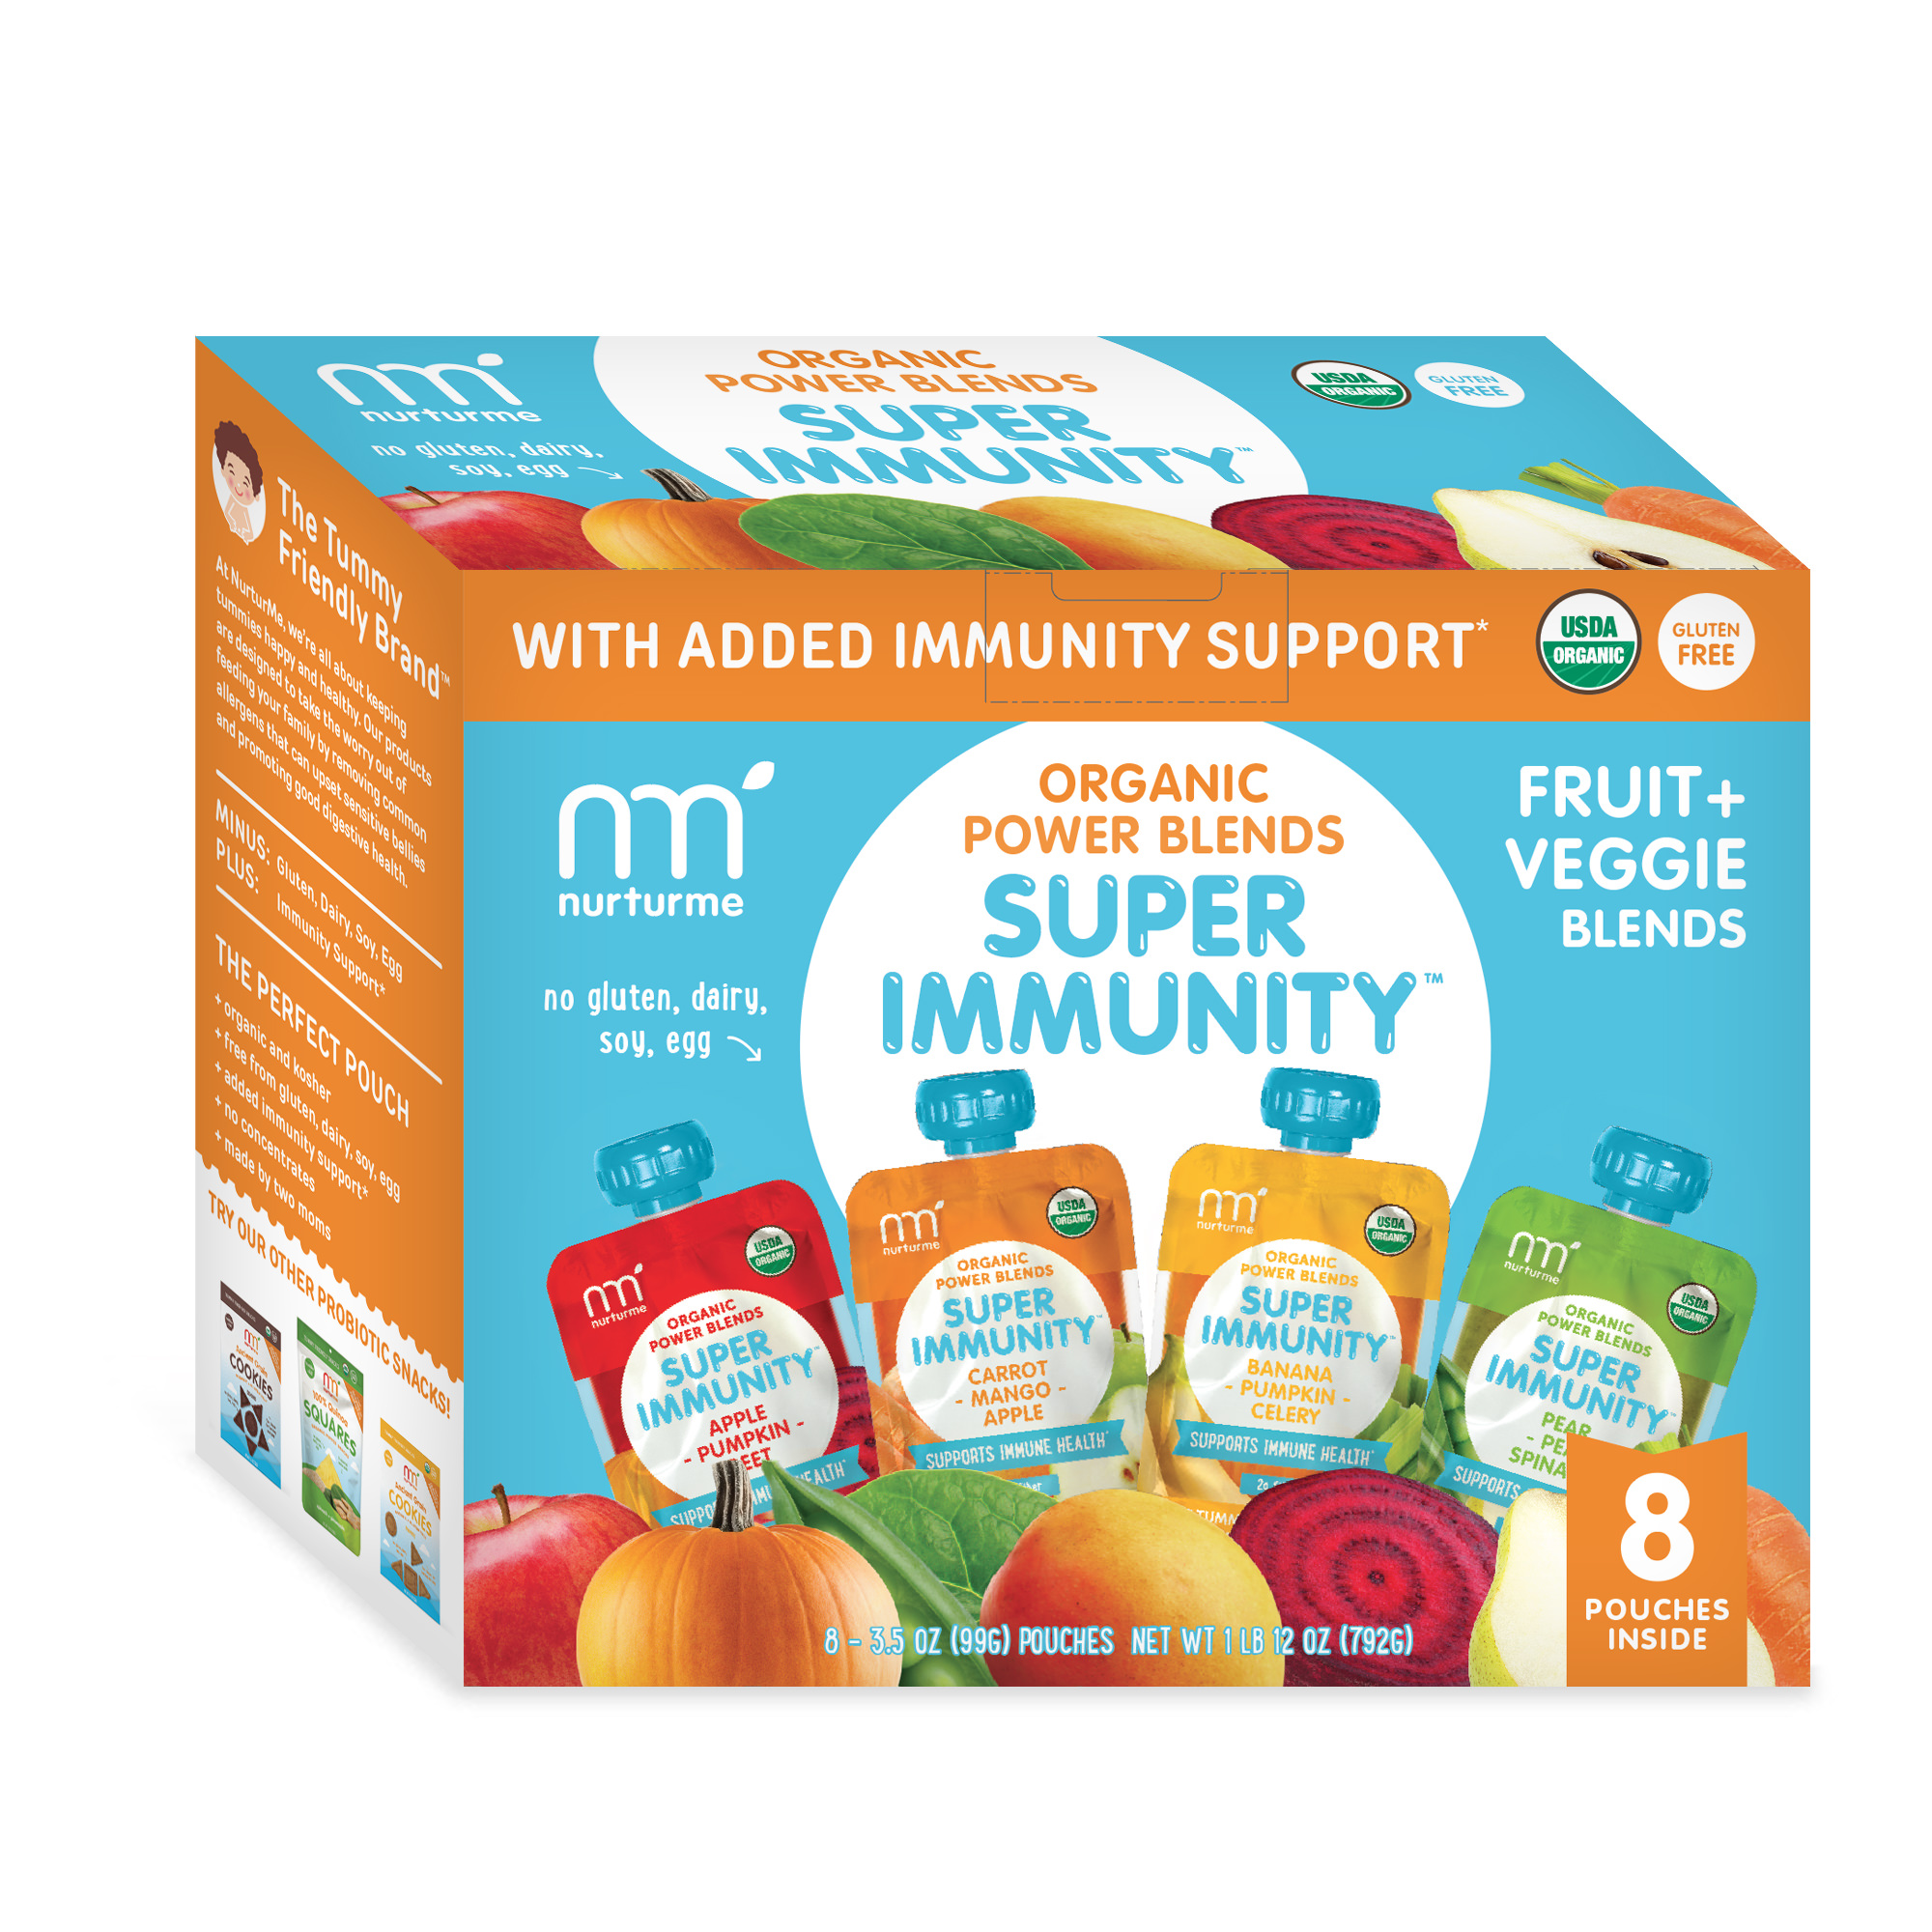 NurturMe Fruits and Veggies Stage 2 Power Blend Organic Baby Food Variety Pack 3.5 Ounce Pouch - 8 Pack